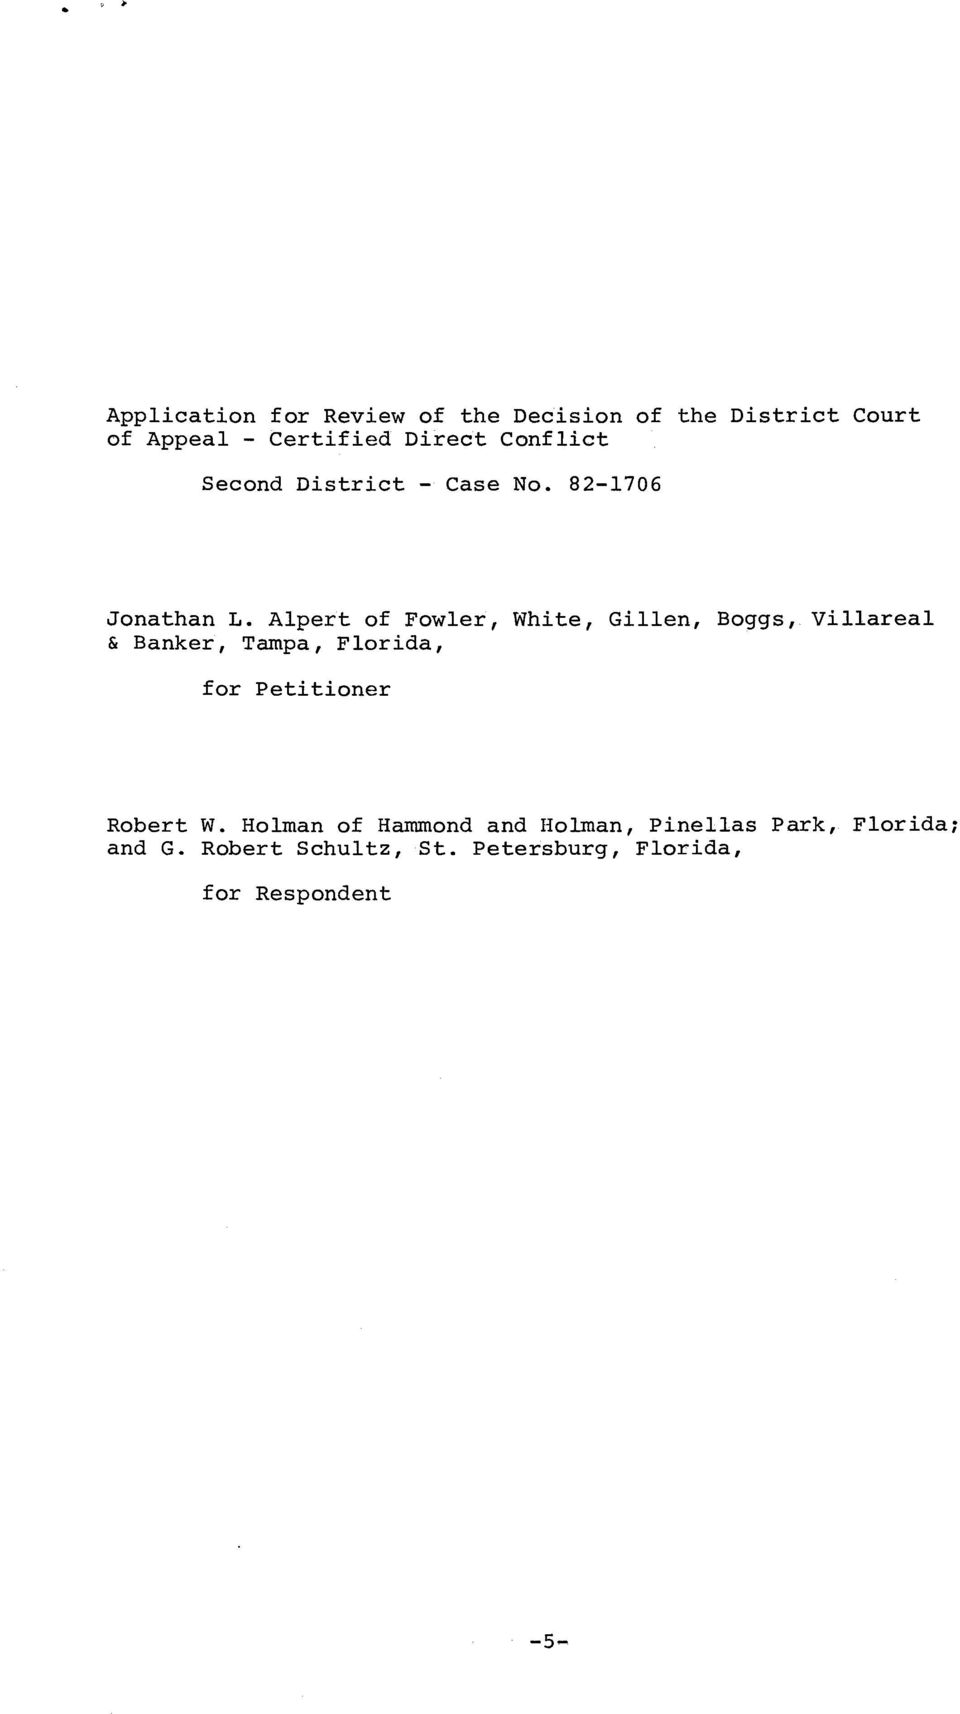 Alpert of Fowler, White, Gillen, Boggs, Villareal & Banker, Tampa, Florida, for Petitioner